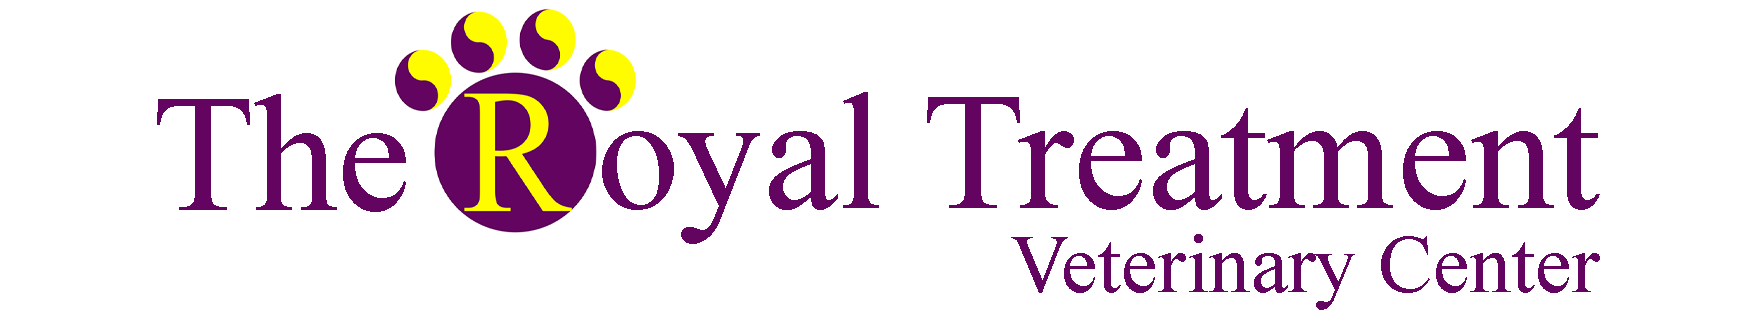 Royal Treatment Veterinary Center